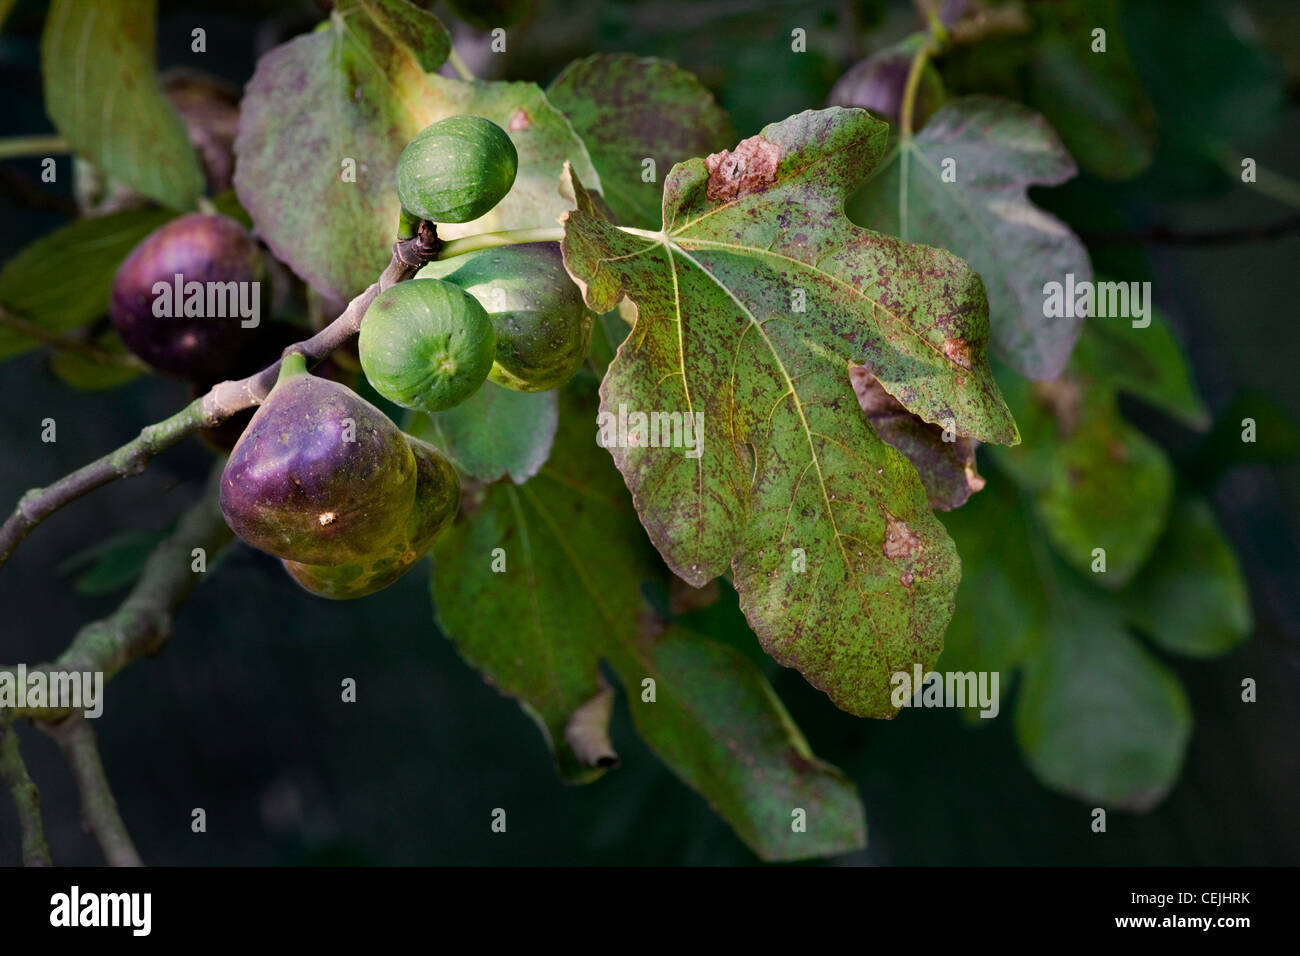 Branch with figs of Common fig tree (Ficus carica), Europe - Stock Image